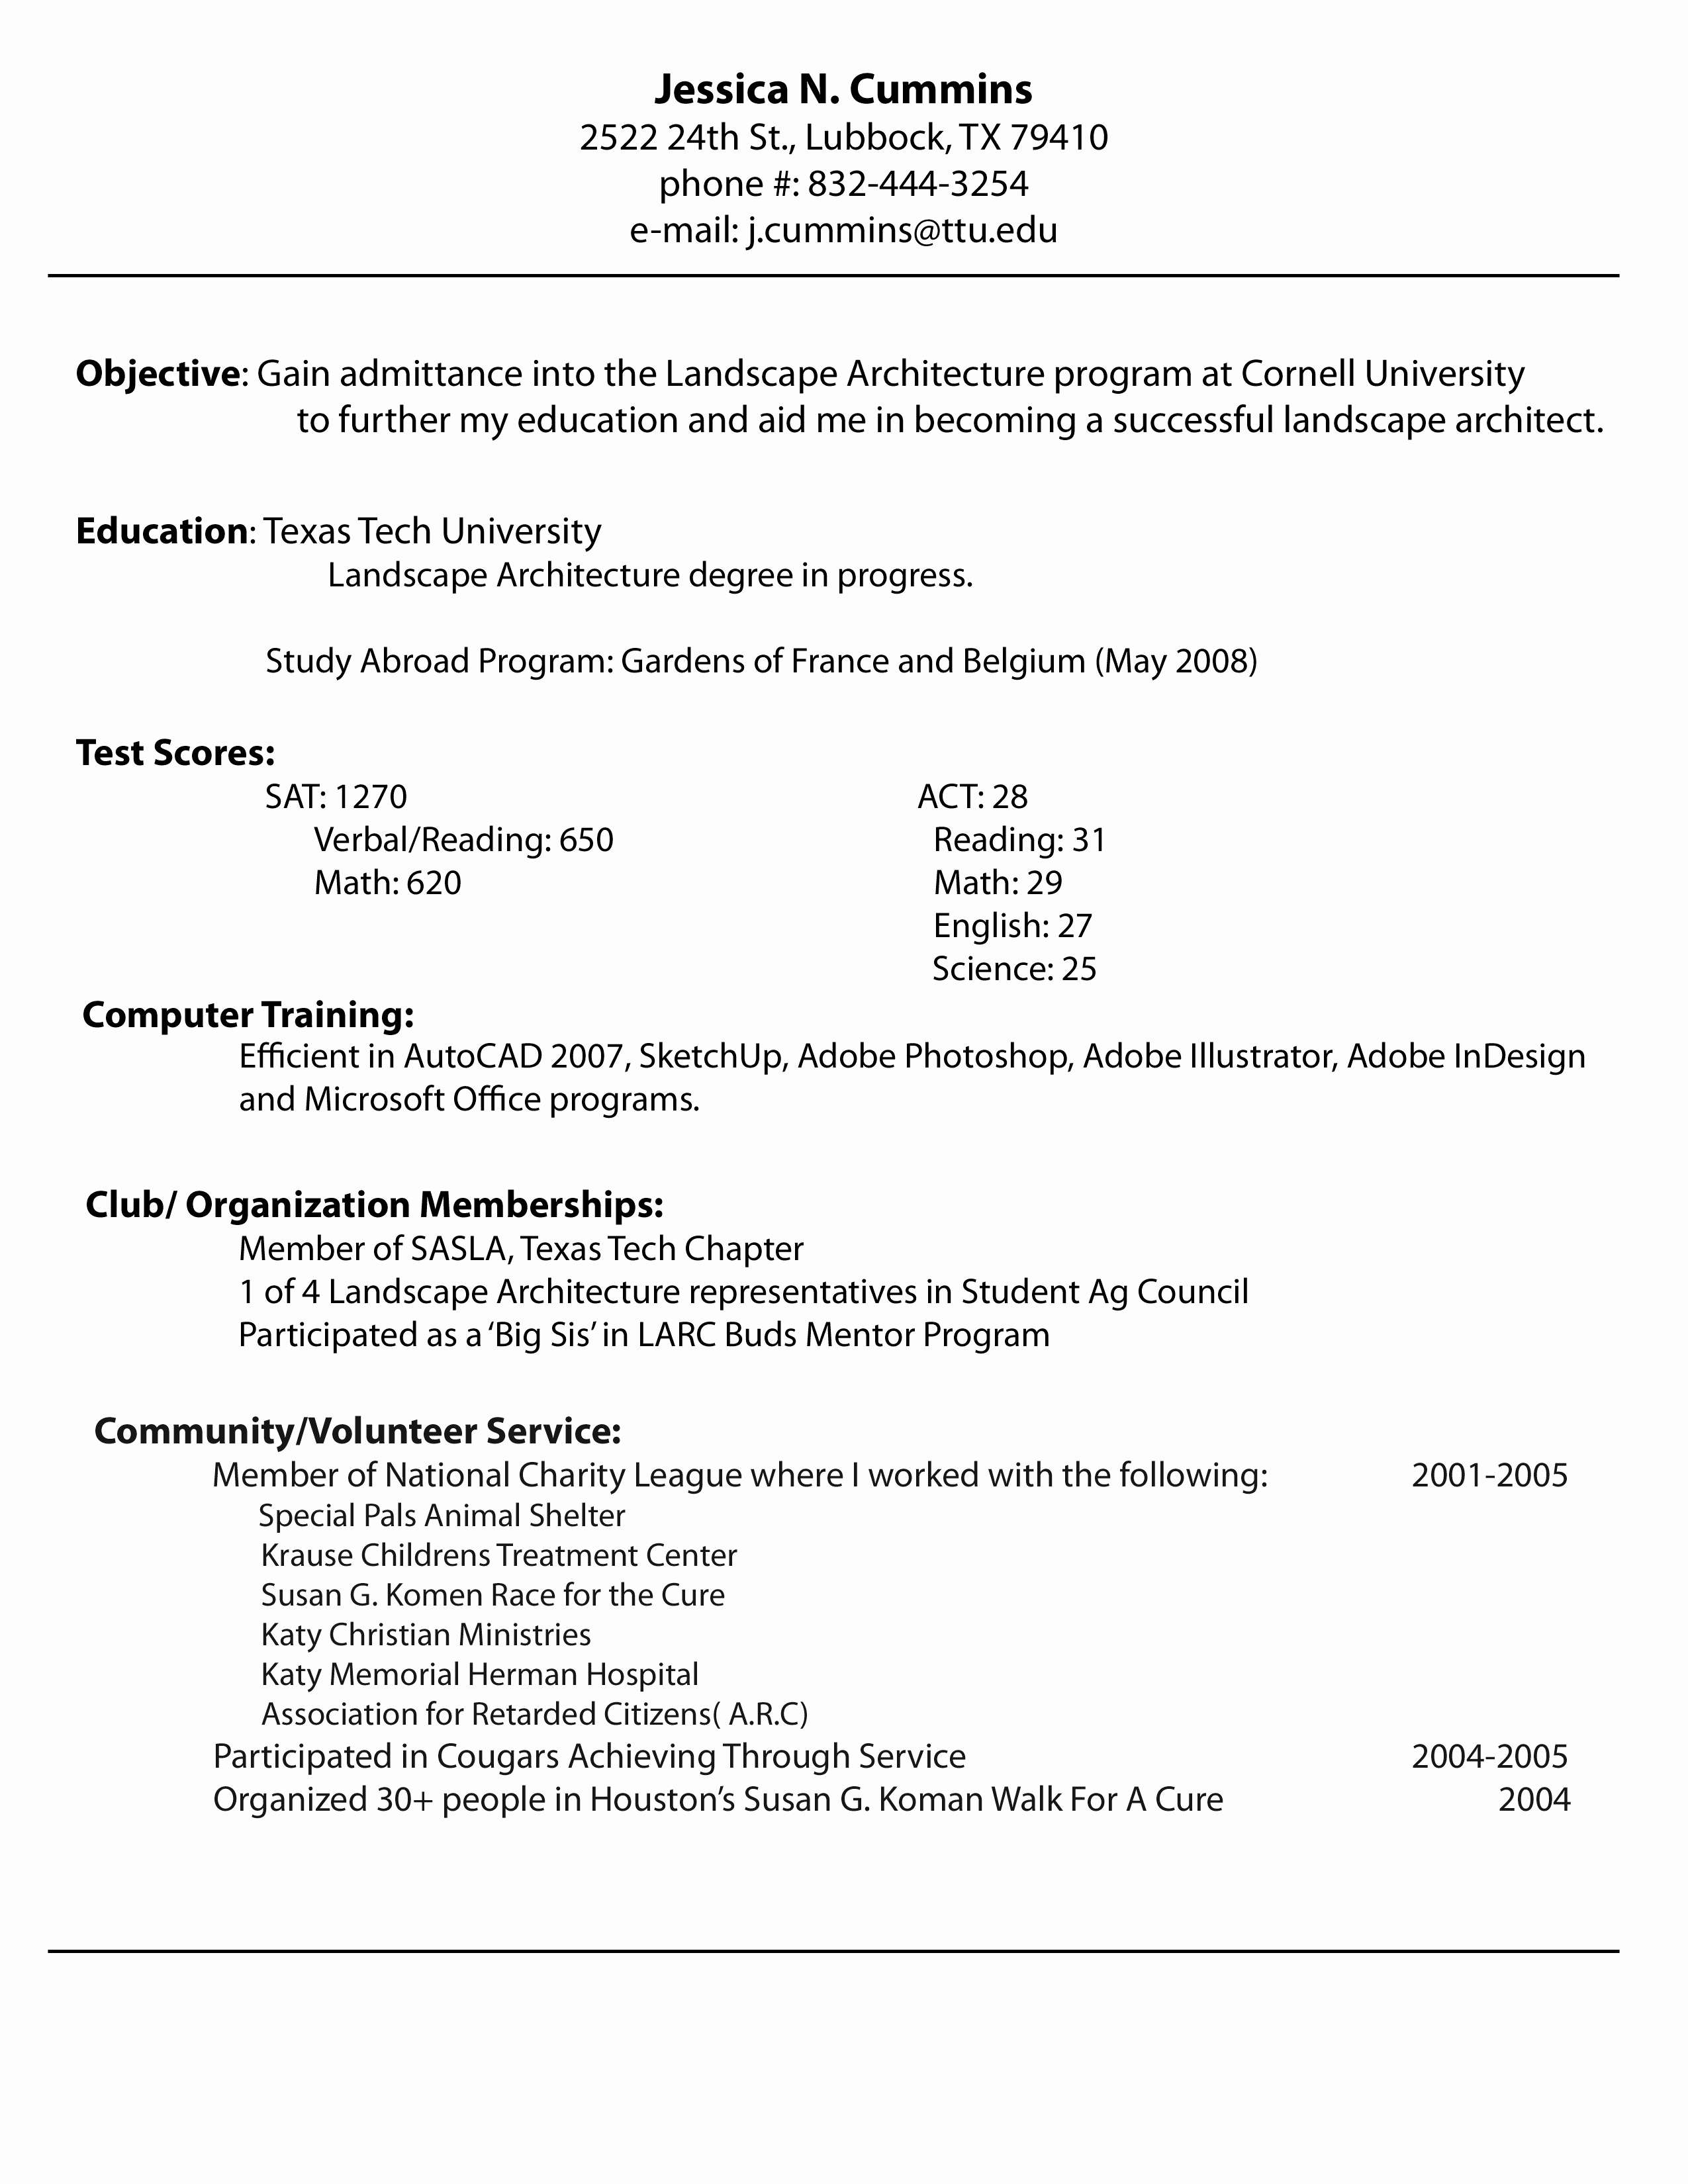 009 Quick Resume Builder Free New Autism Cover Letters Benjamin Franklin Chess Essay Cornell Of Unbelievable Thesis Statement Conclusion Full